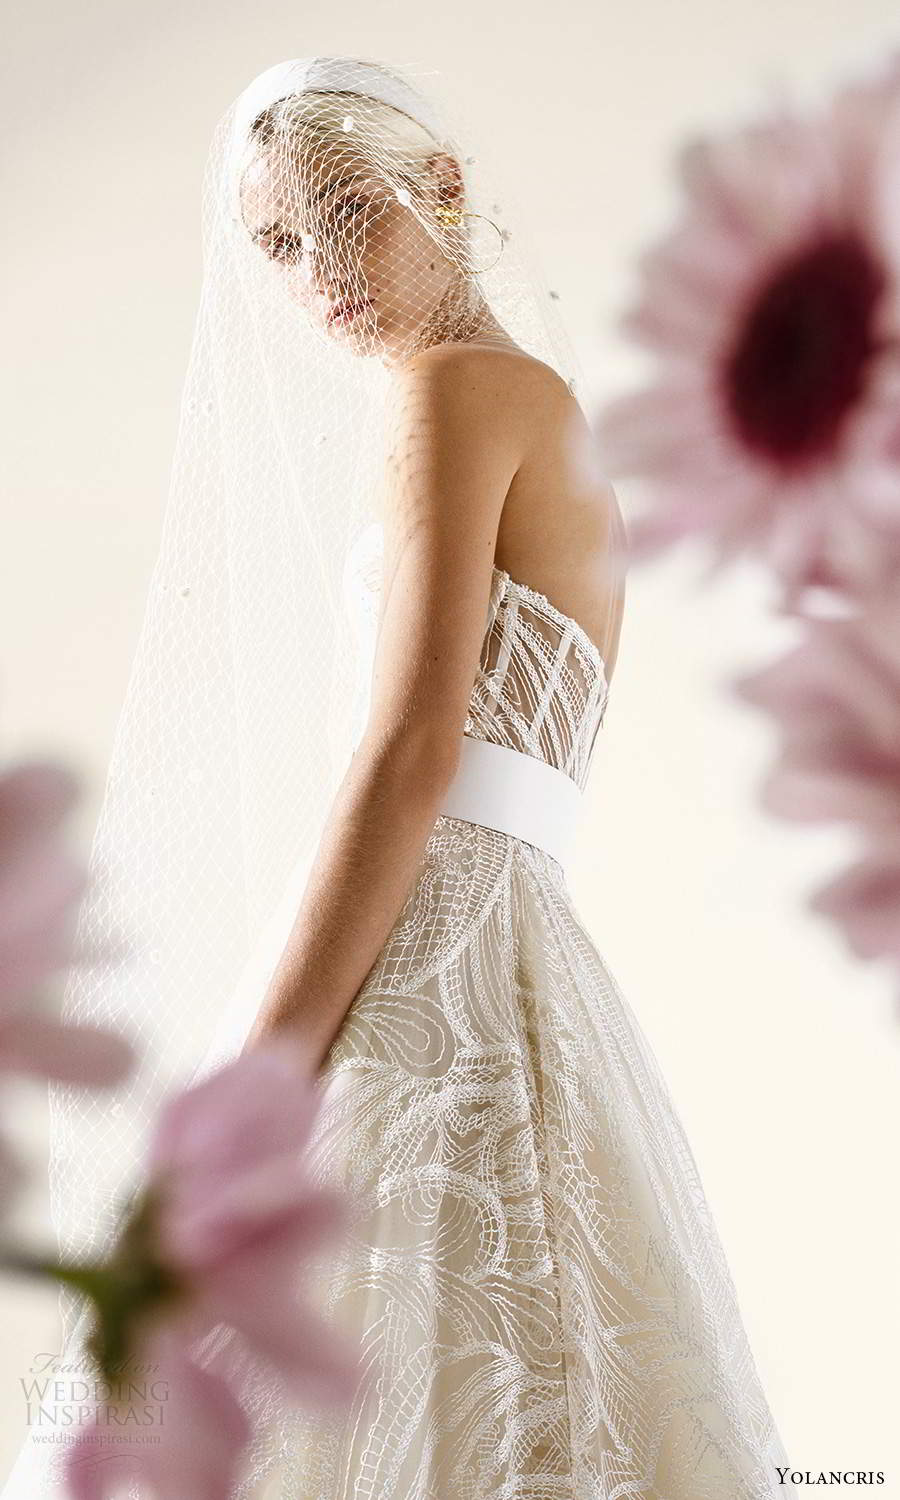 yolancris 2021 bridal strapless sweetheart neckline fully embellished lace ball gown wedding dress chapel train (1) zv